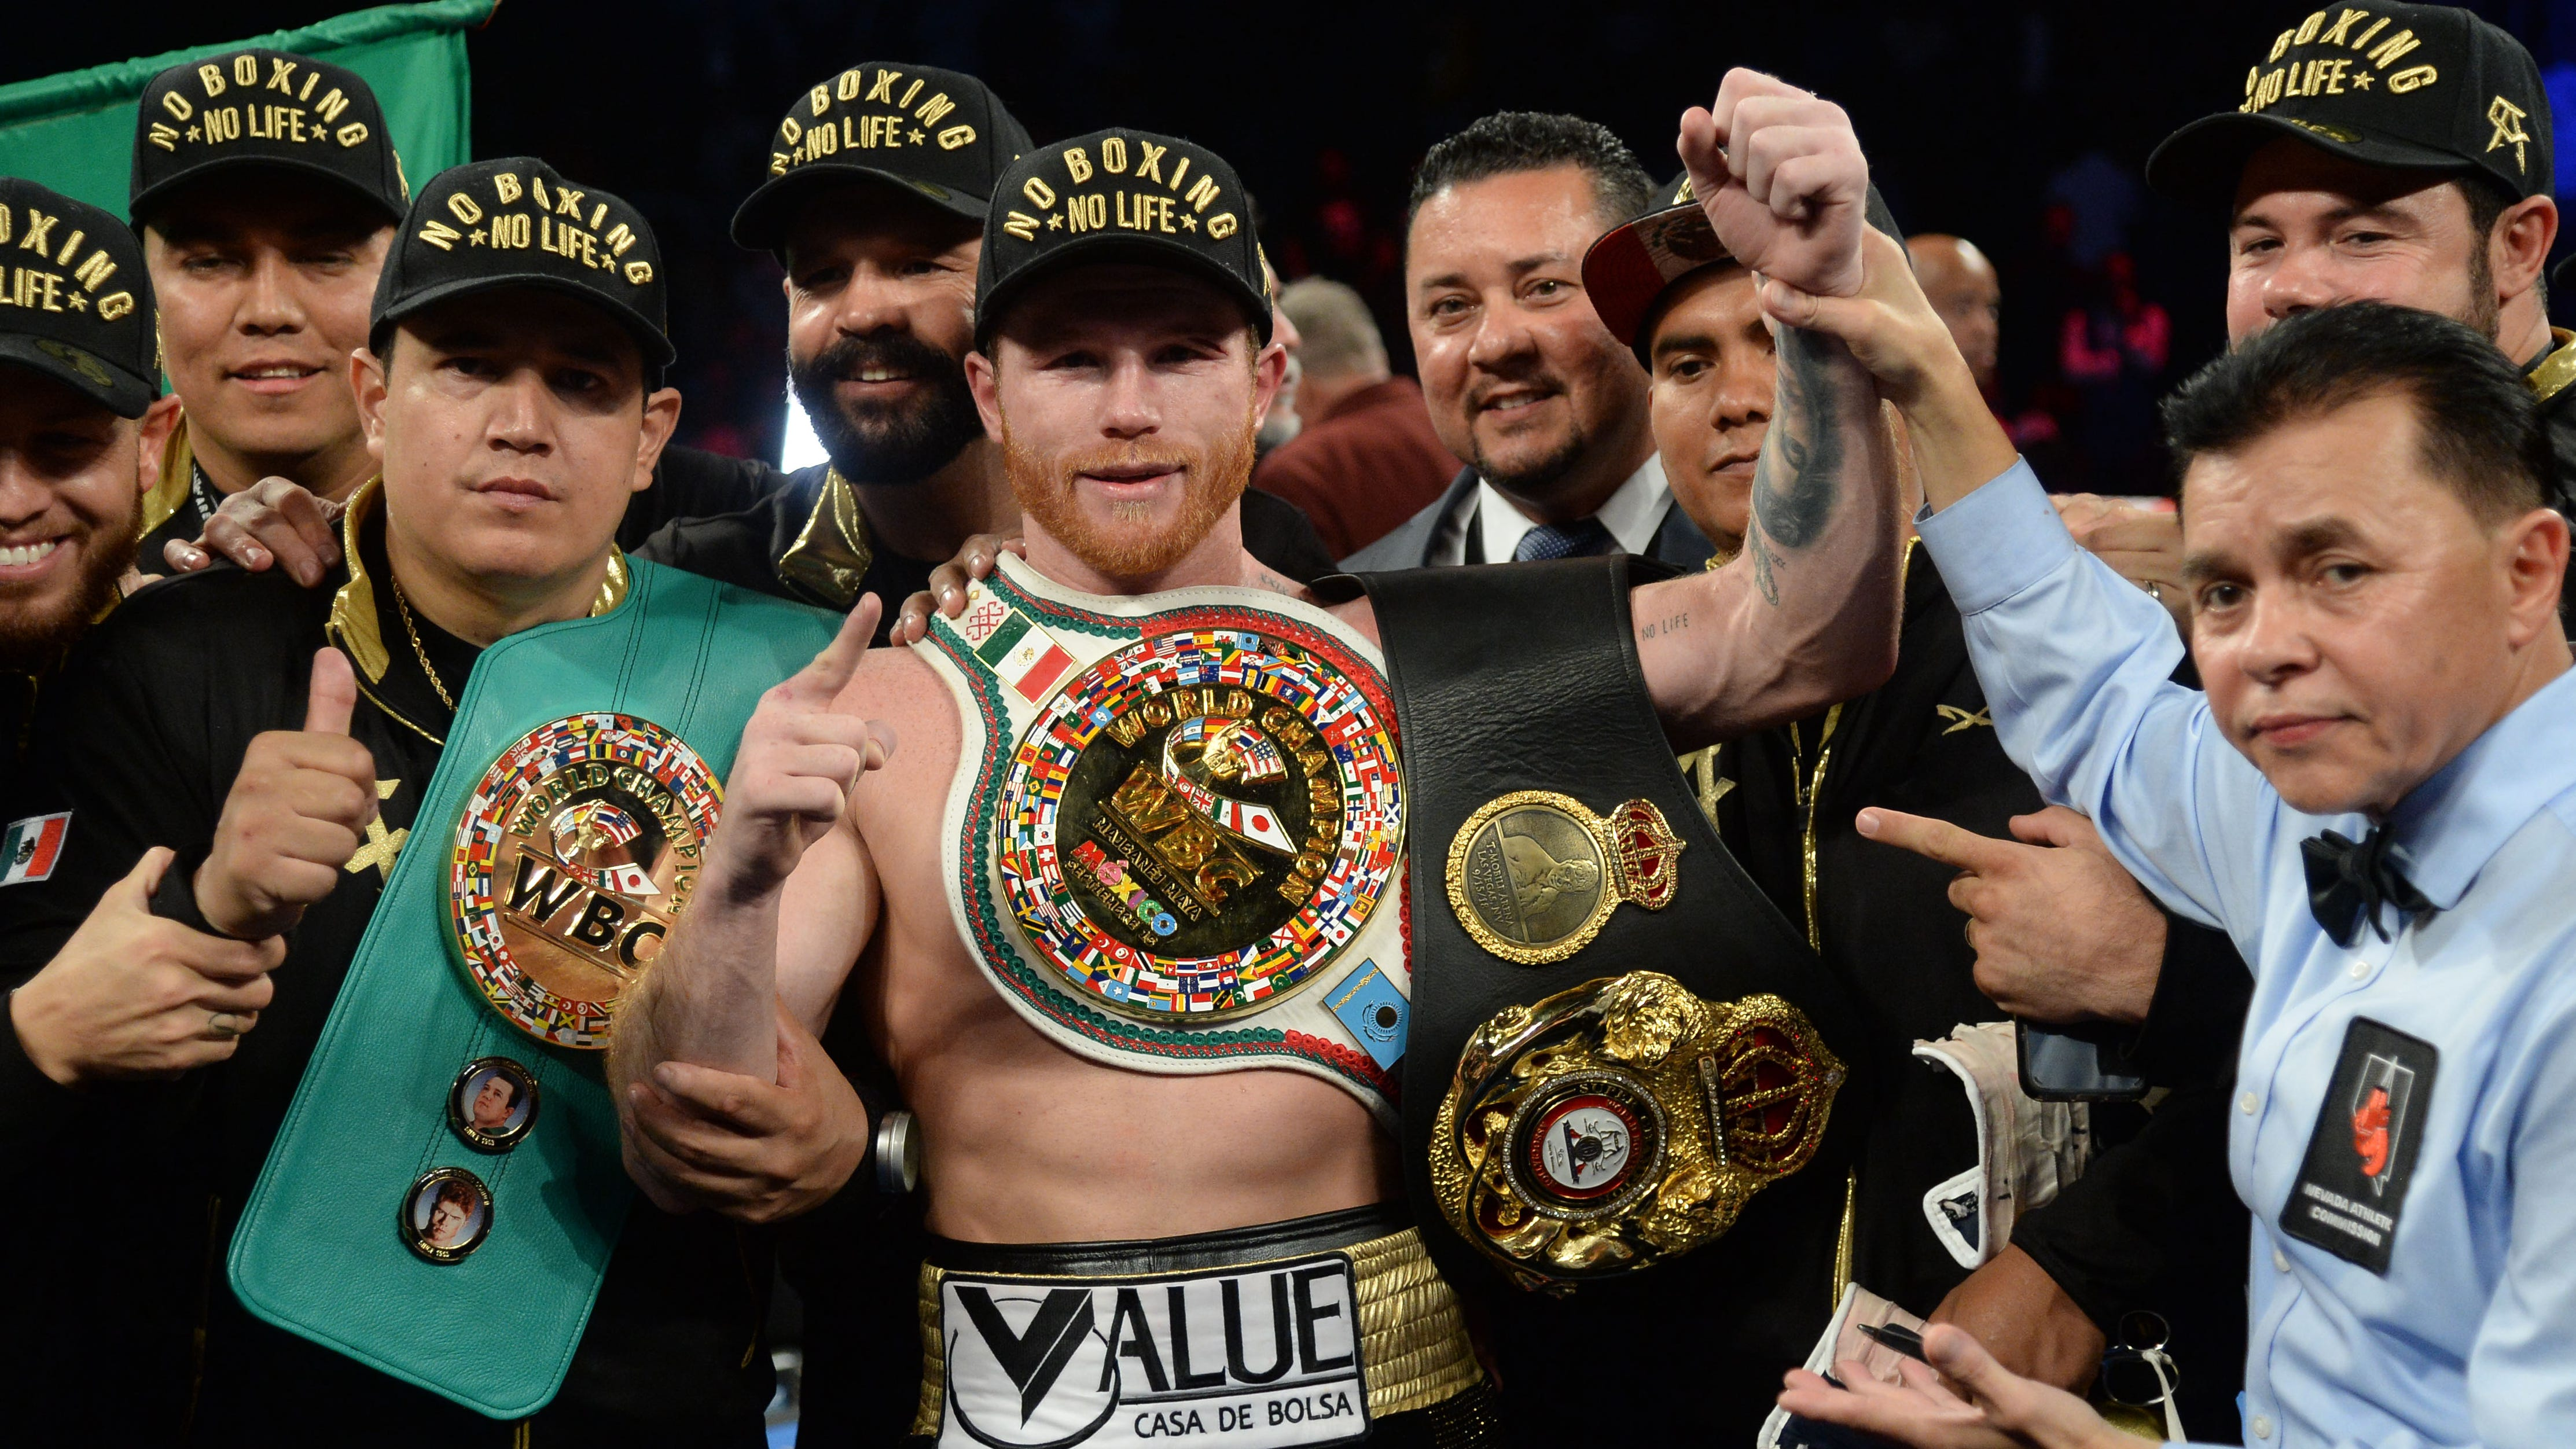 Aggressive Canelo Alvarez wins majority decision over Gennady Golovkin in intense rematch thumbnail